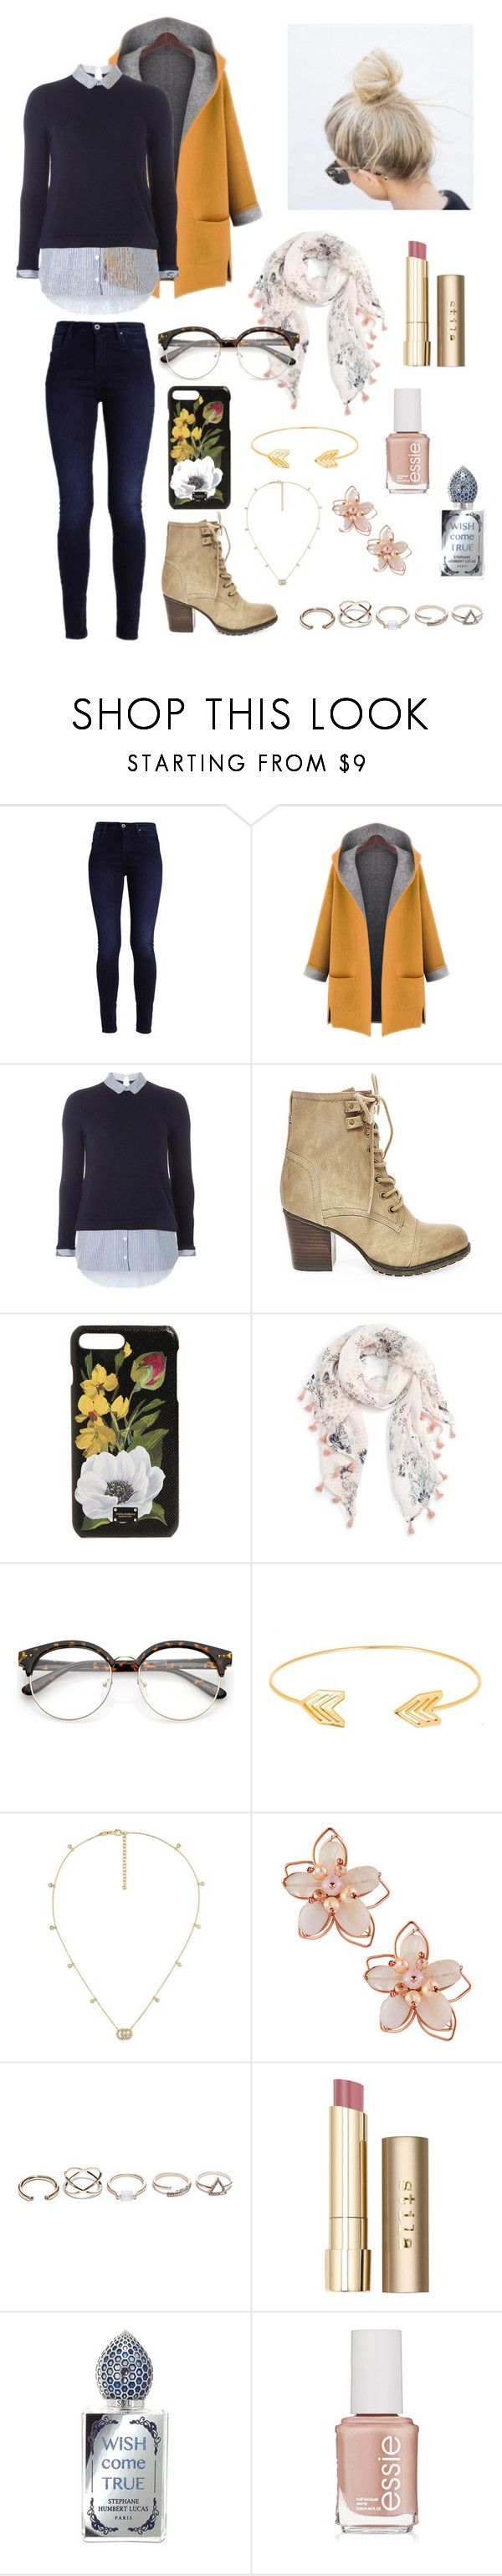 """""""Trendy Outfits"""" by coldplay-shirt on Polyvore featuring WithChic, Dorothy Perkins, Steve Madden, Dolce&Gabbana, Caslon, Lord & Taylor, Gucci, NAKAMOL, GUESS and Stila"""